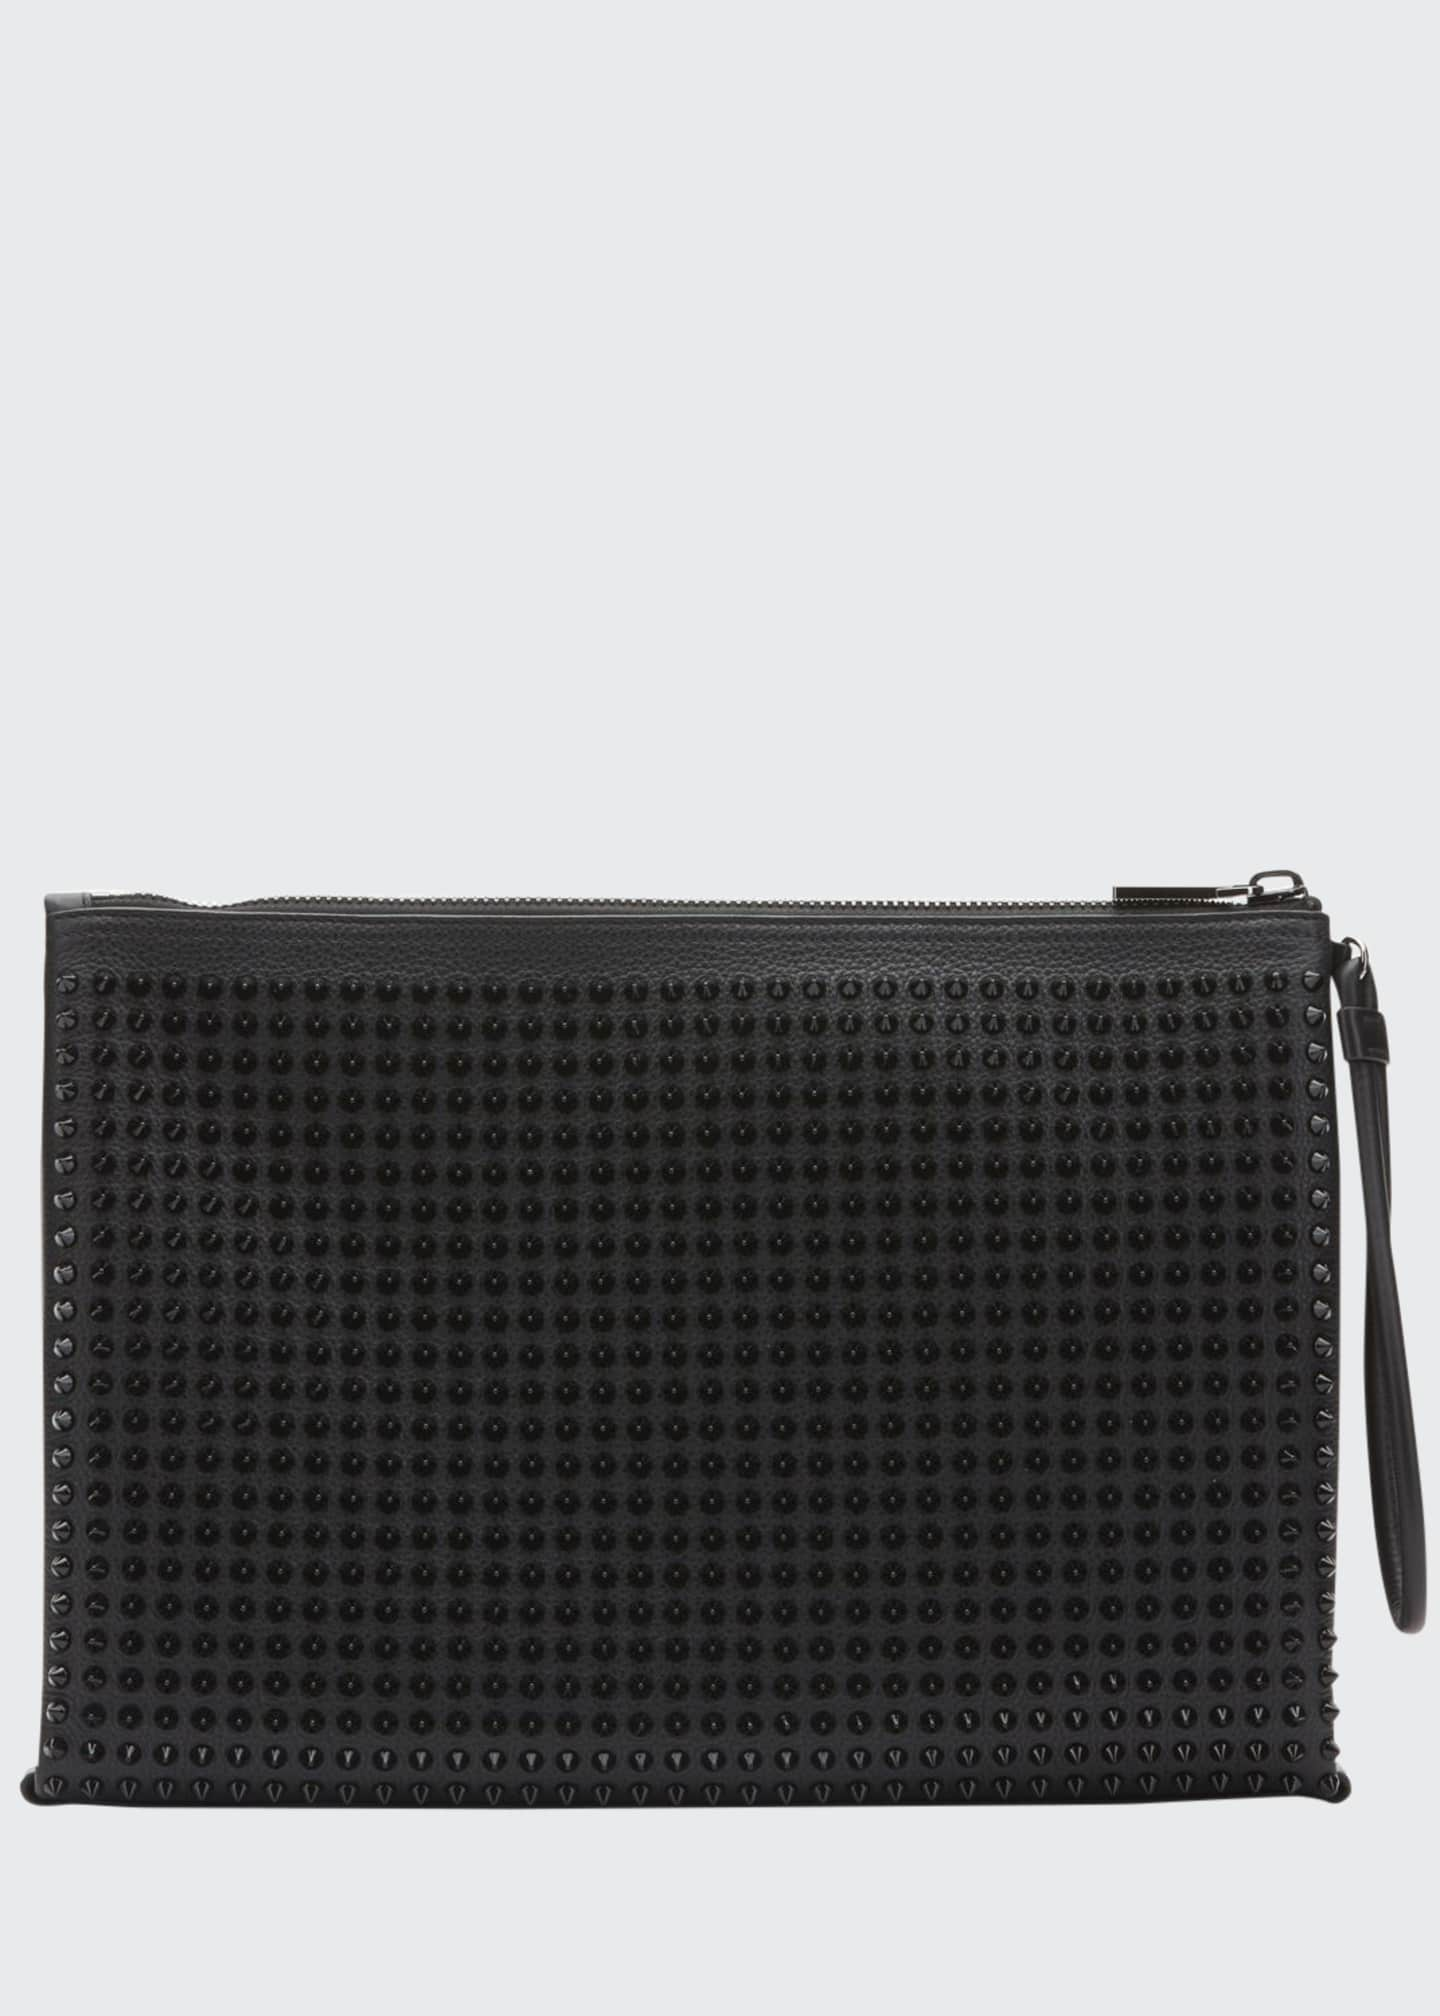 Christian Louboutin Men's Empire Spiked Leather Pouch Bag